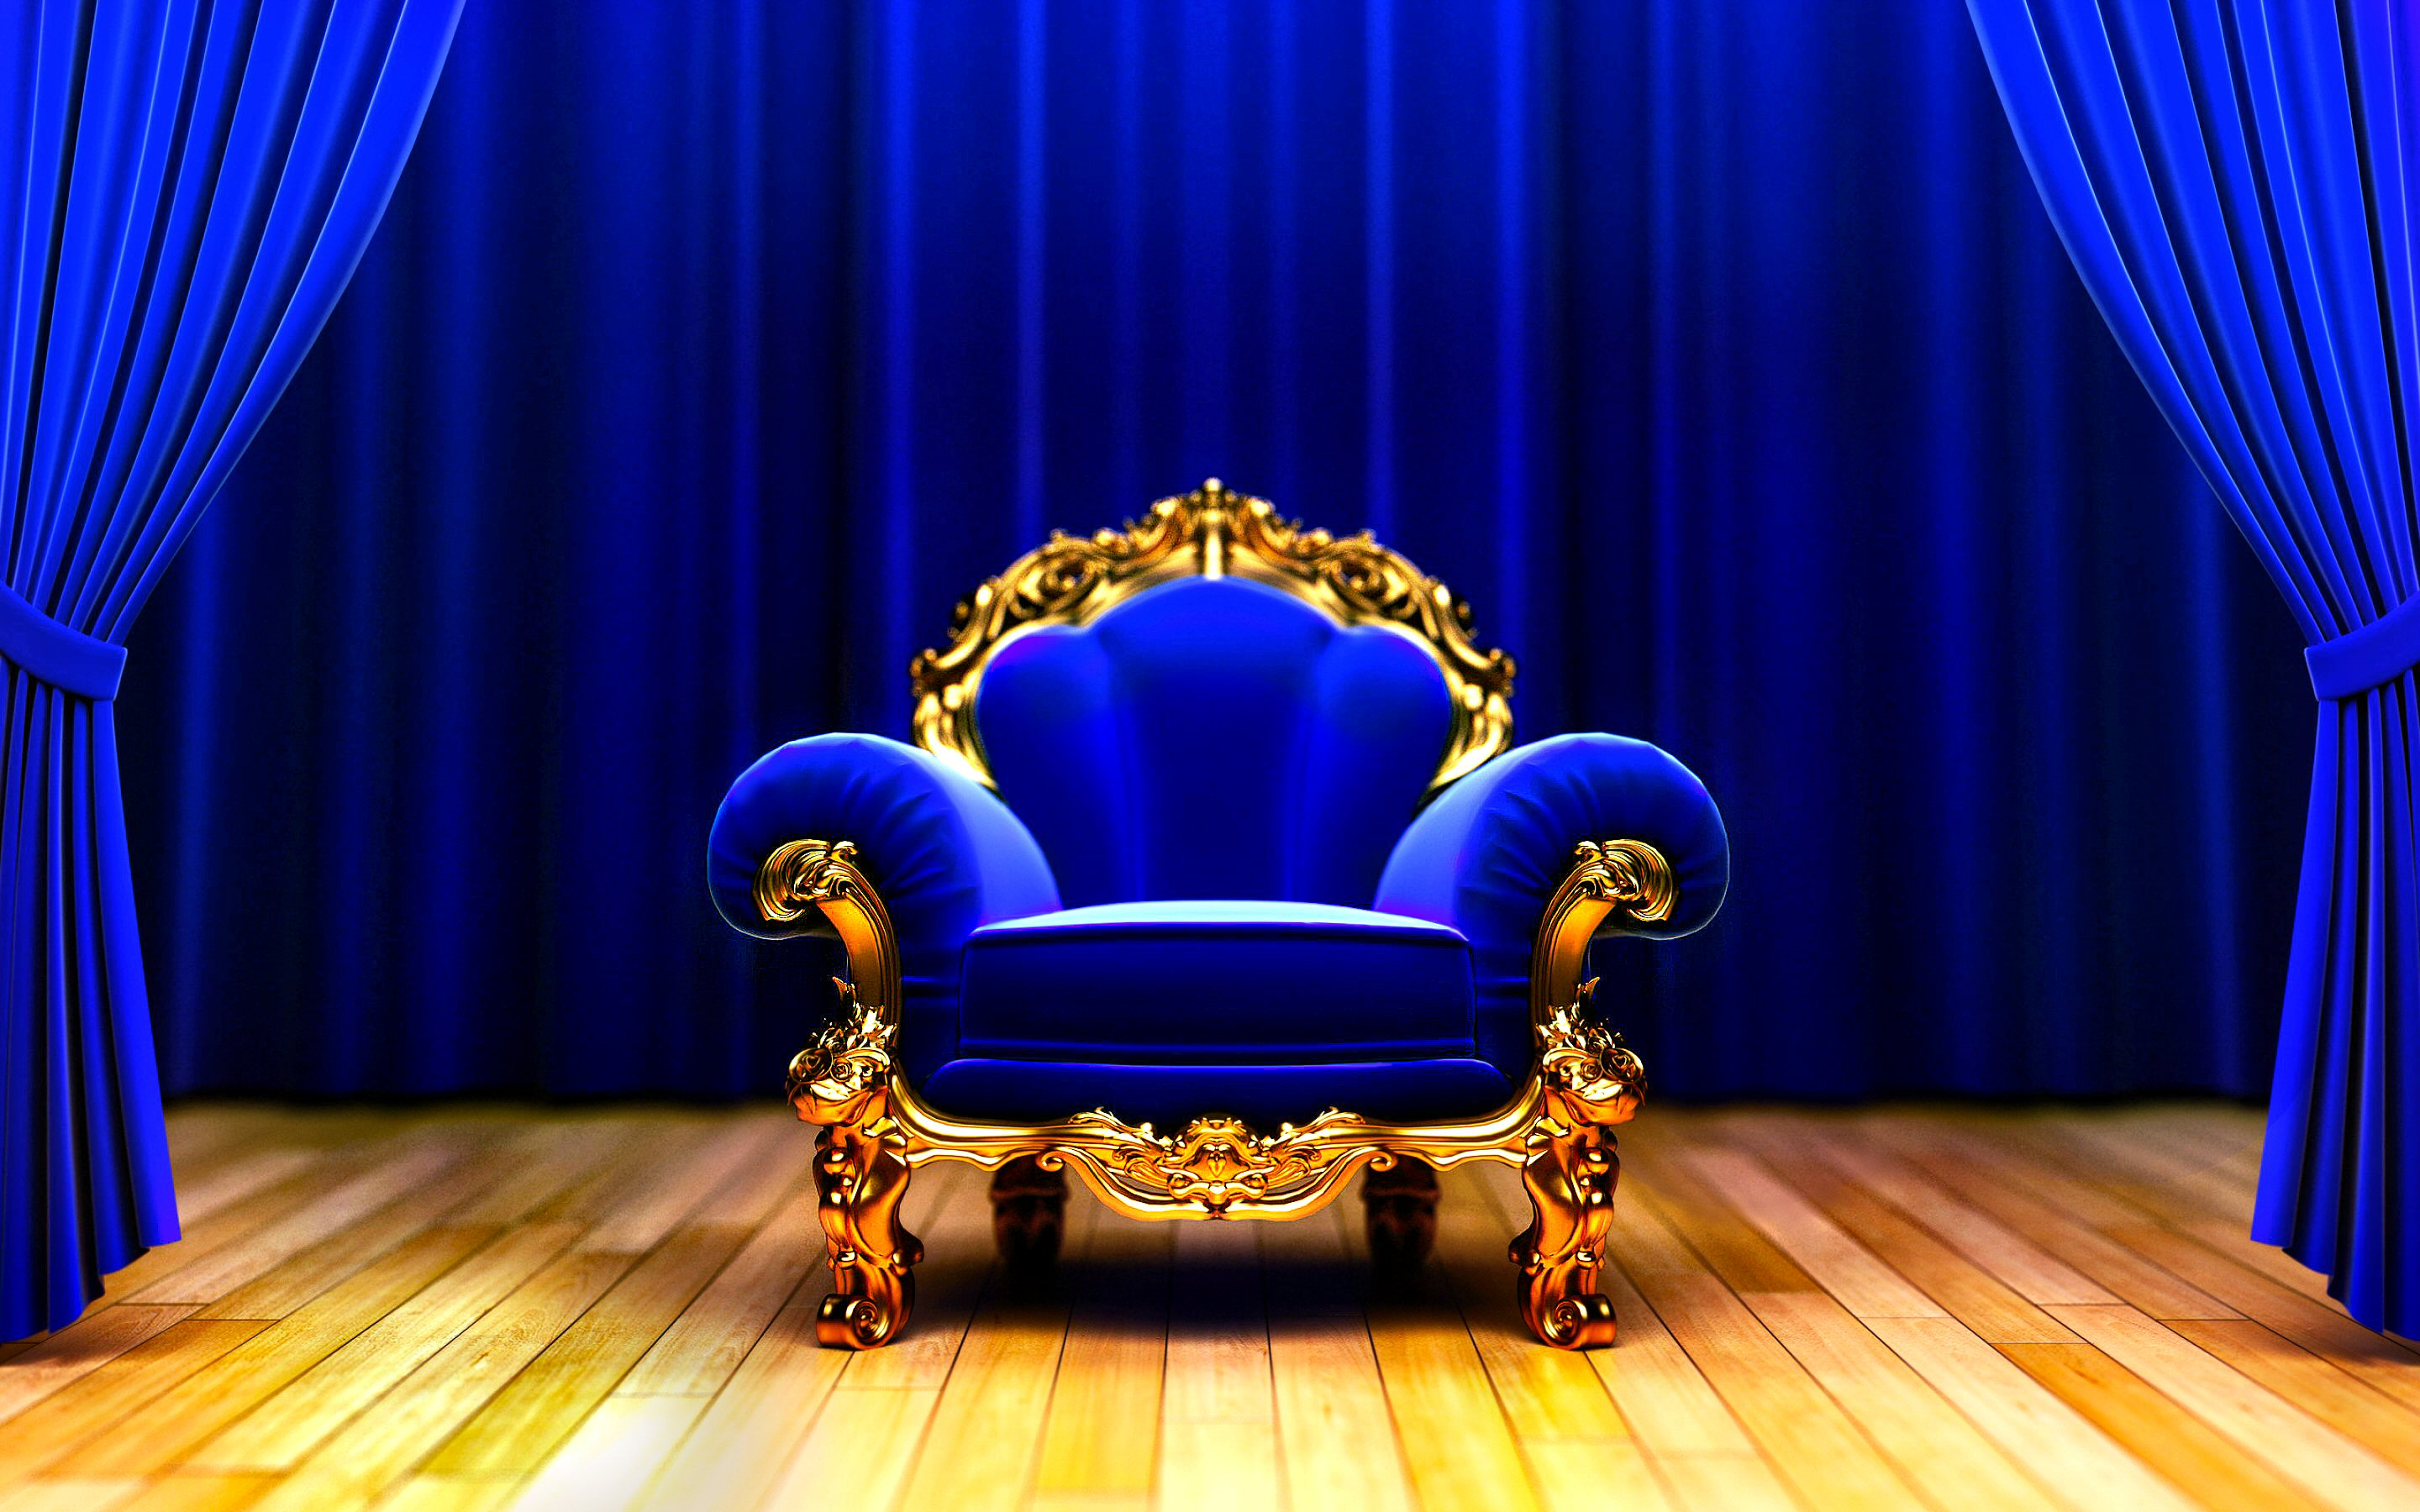 chair images hd wedding covers chesterfield 249 wallpapers background wallpaper abyss image id 402931